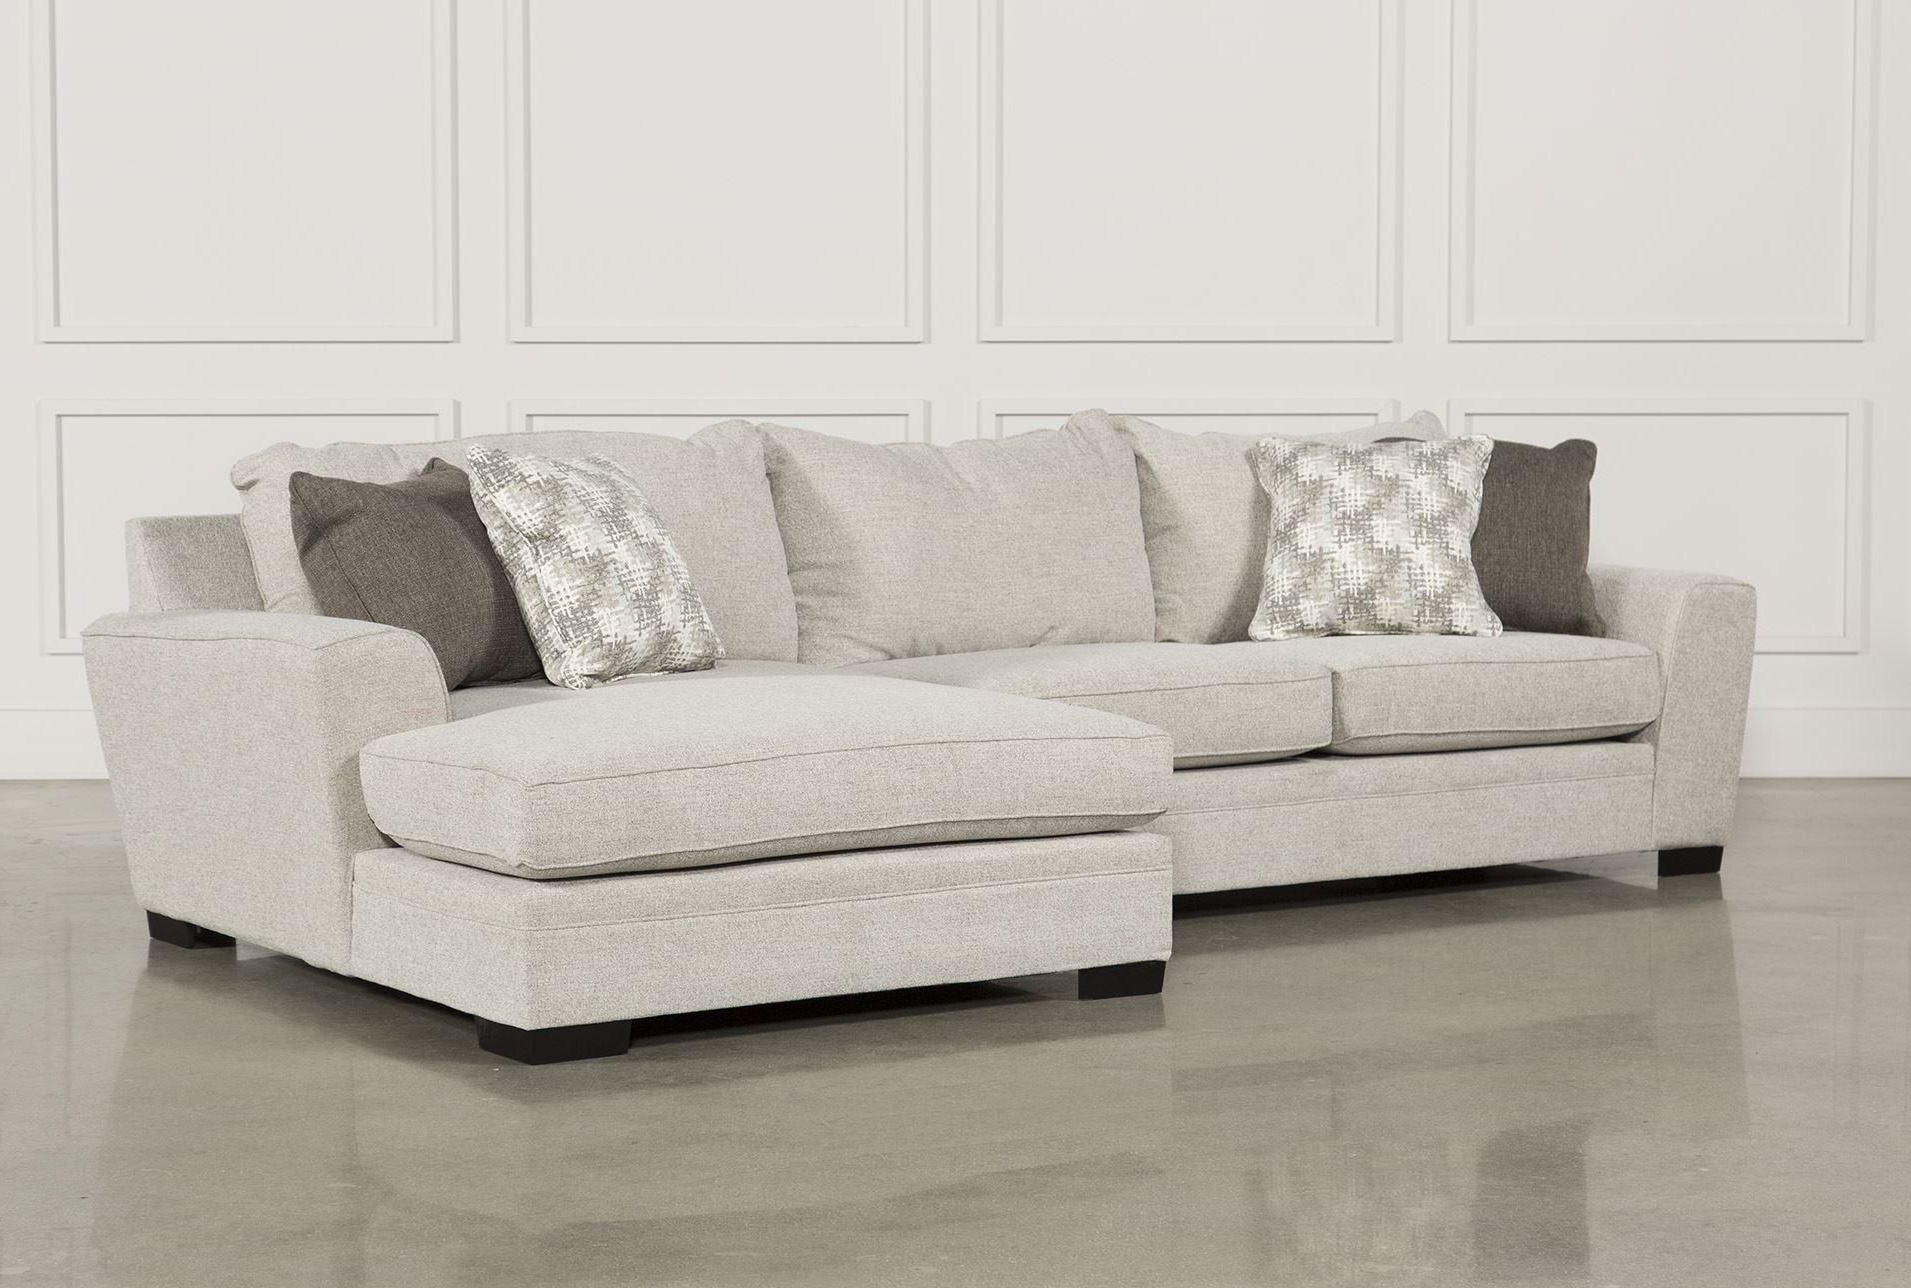 Aquarius Light Grey 2 Piece Sectionals With Raf Chaise Inside Most Up To Date Delano 2 Piece Sectional W/raf Oversized Chaise (View 6 of 20)